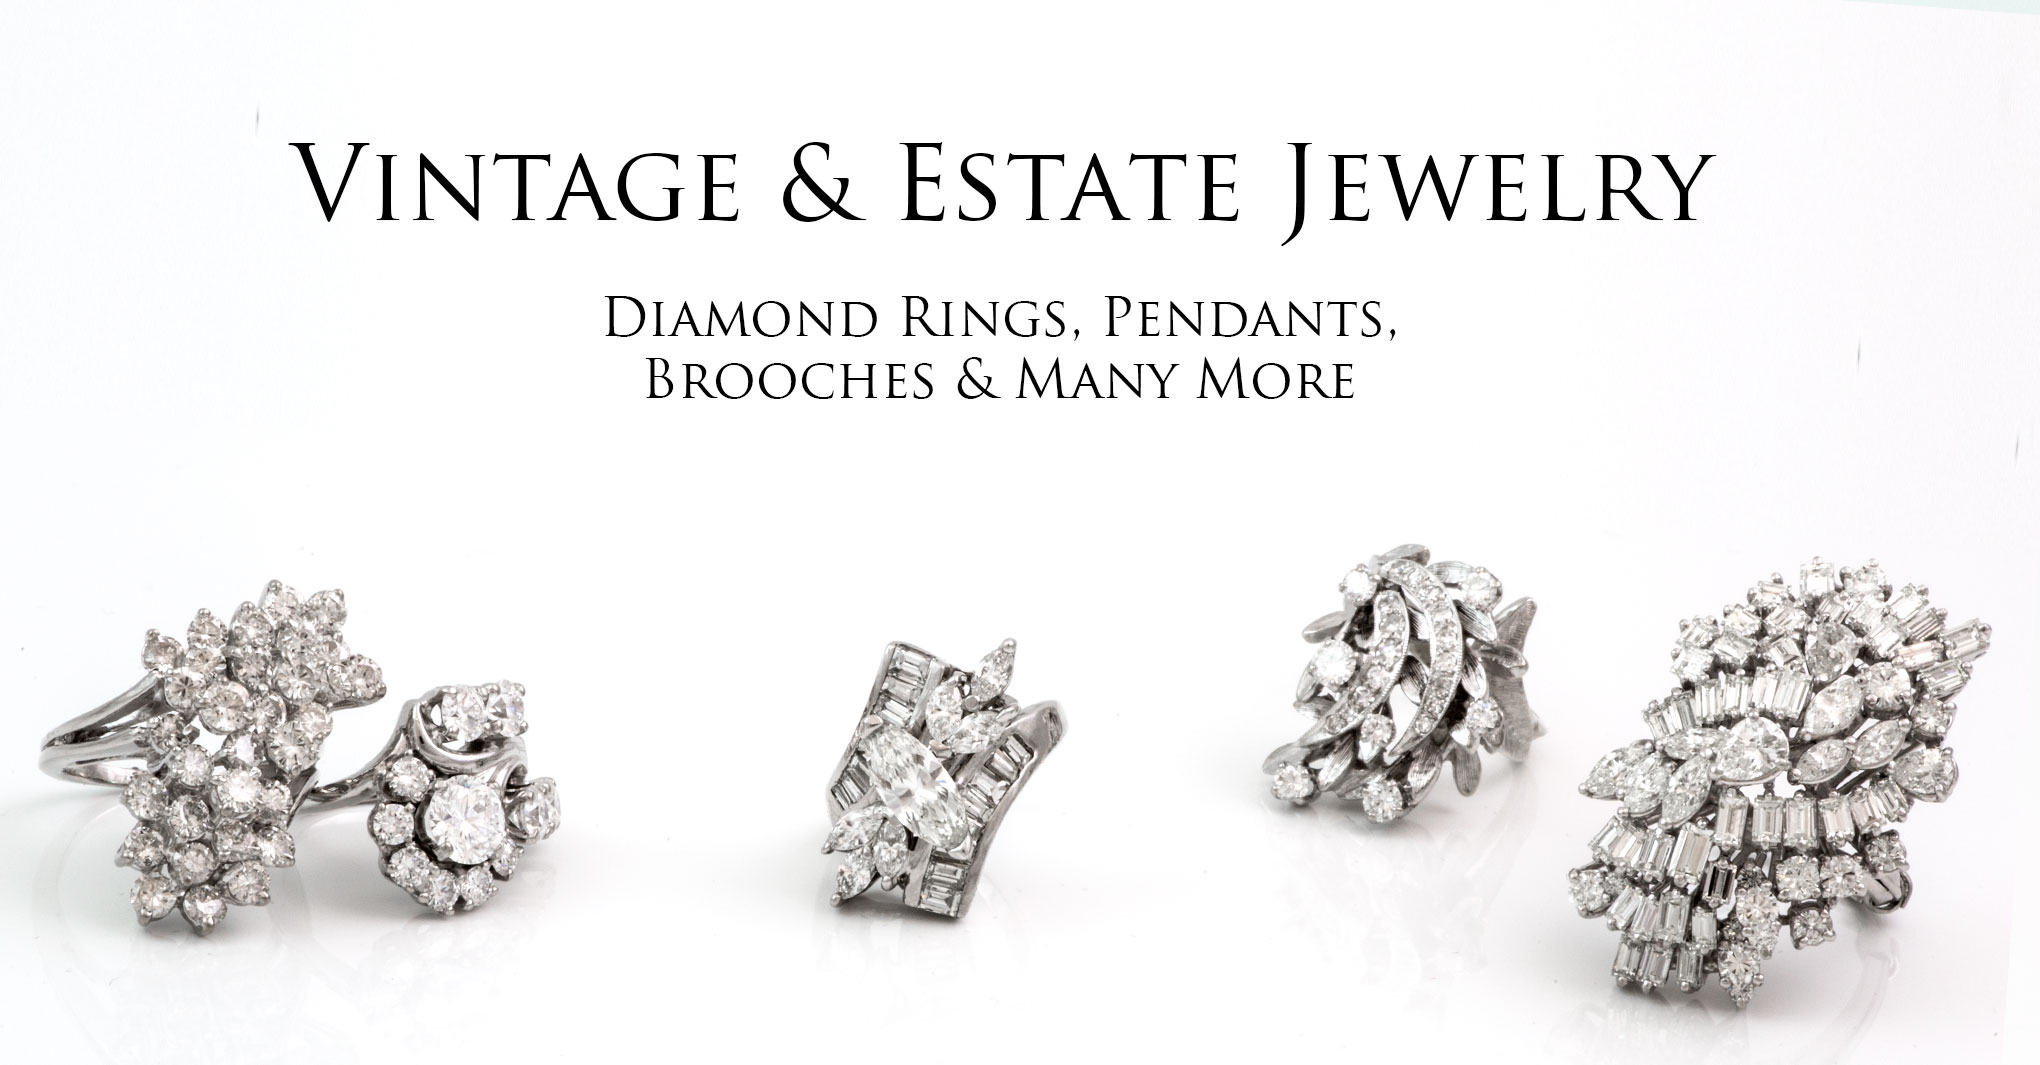 Vintage & Estate Jewelry - South Bay Gold Torrance